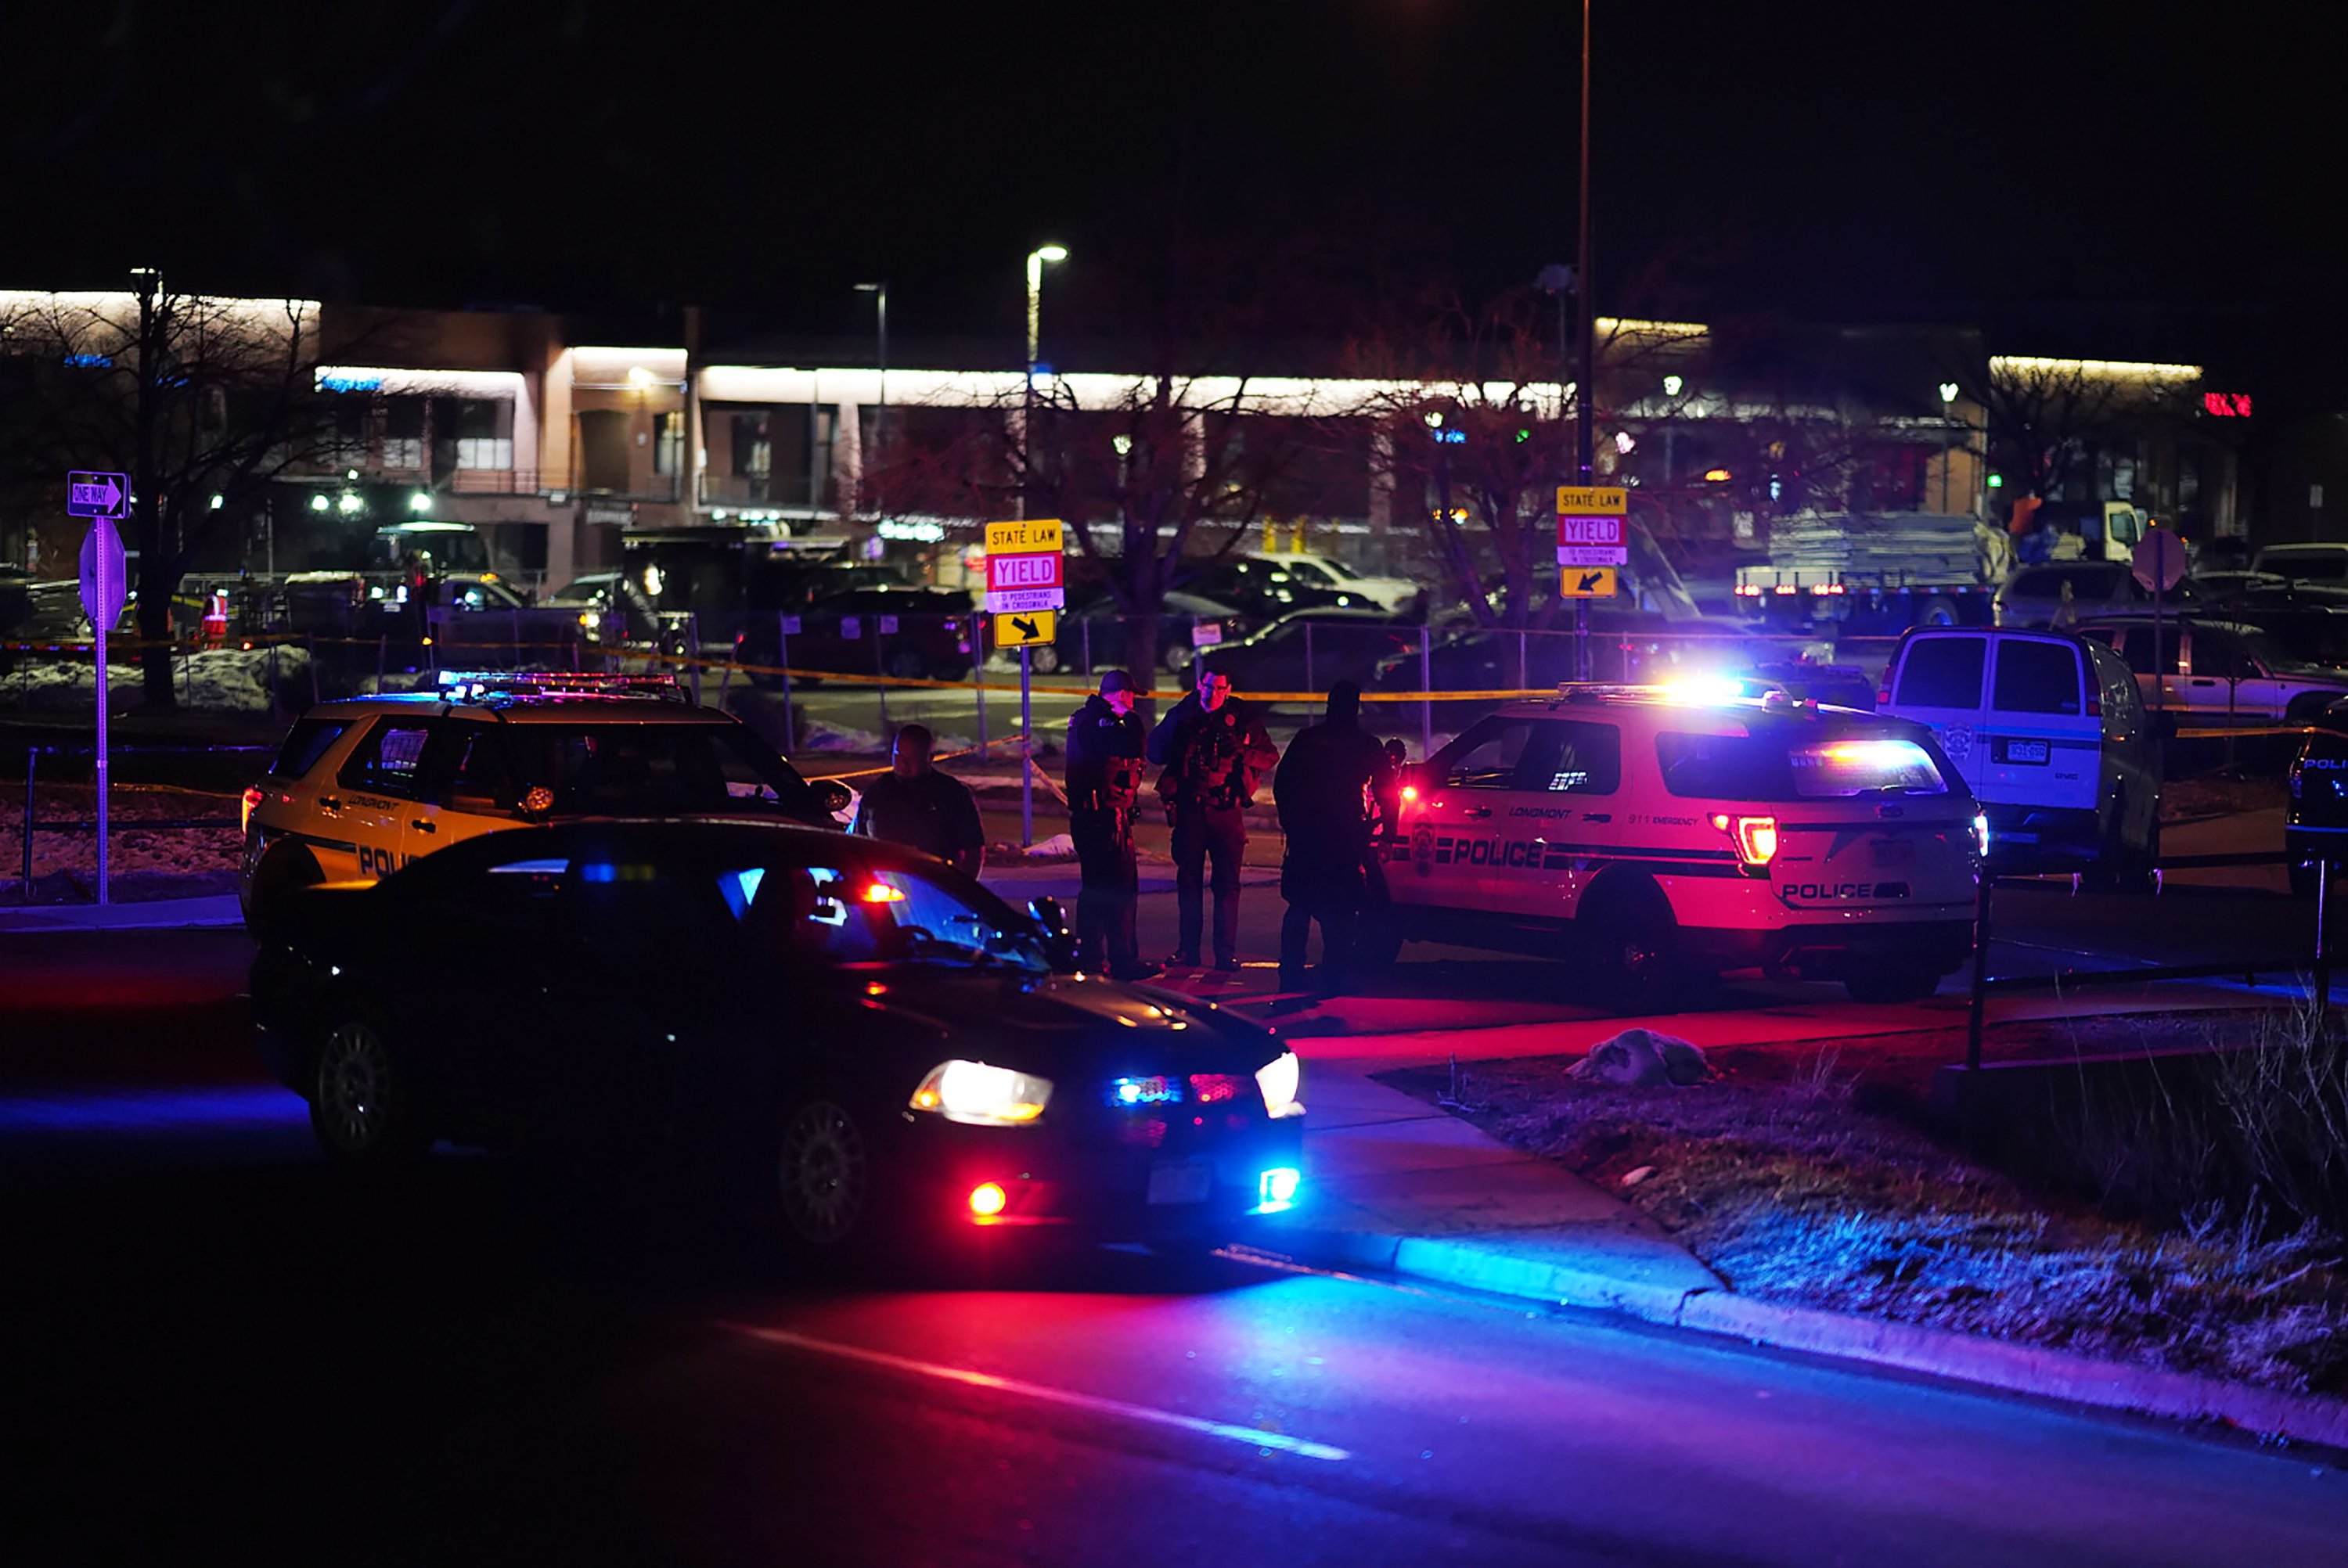 Mass shooting in Colorado supermarket leaves 10 killed | Daily Sabah